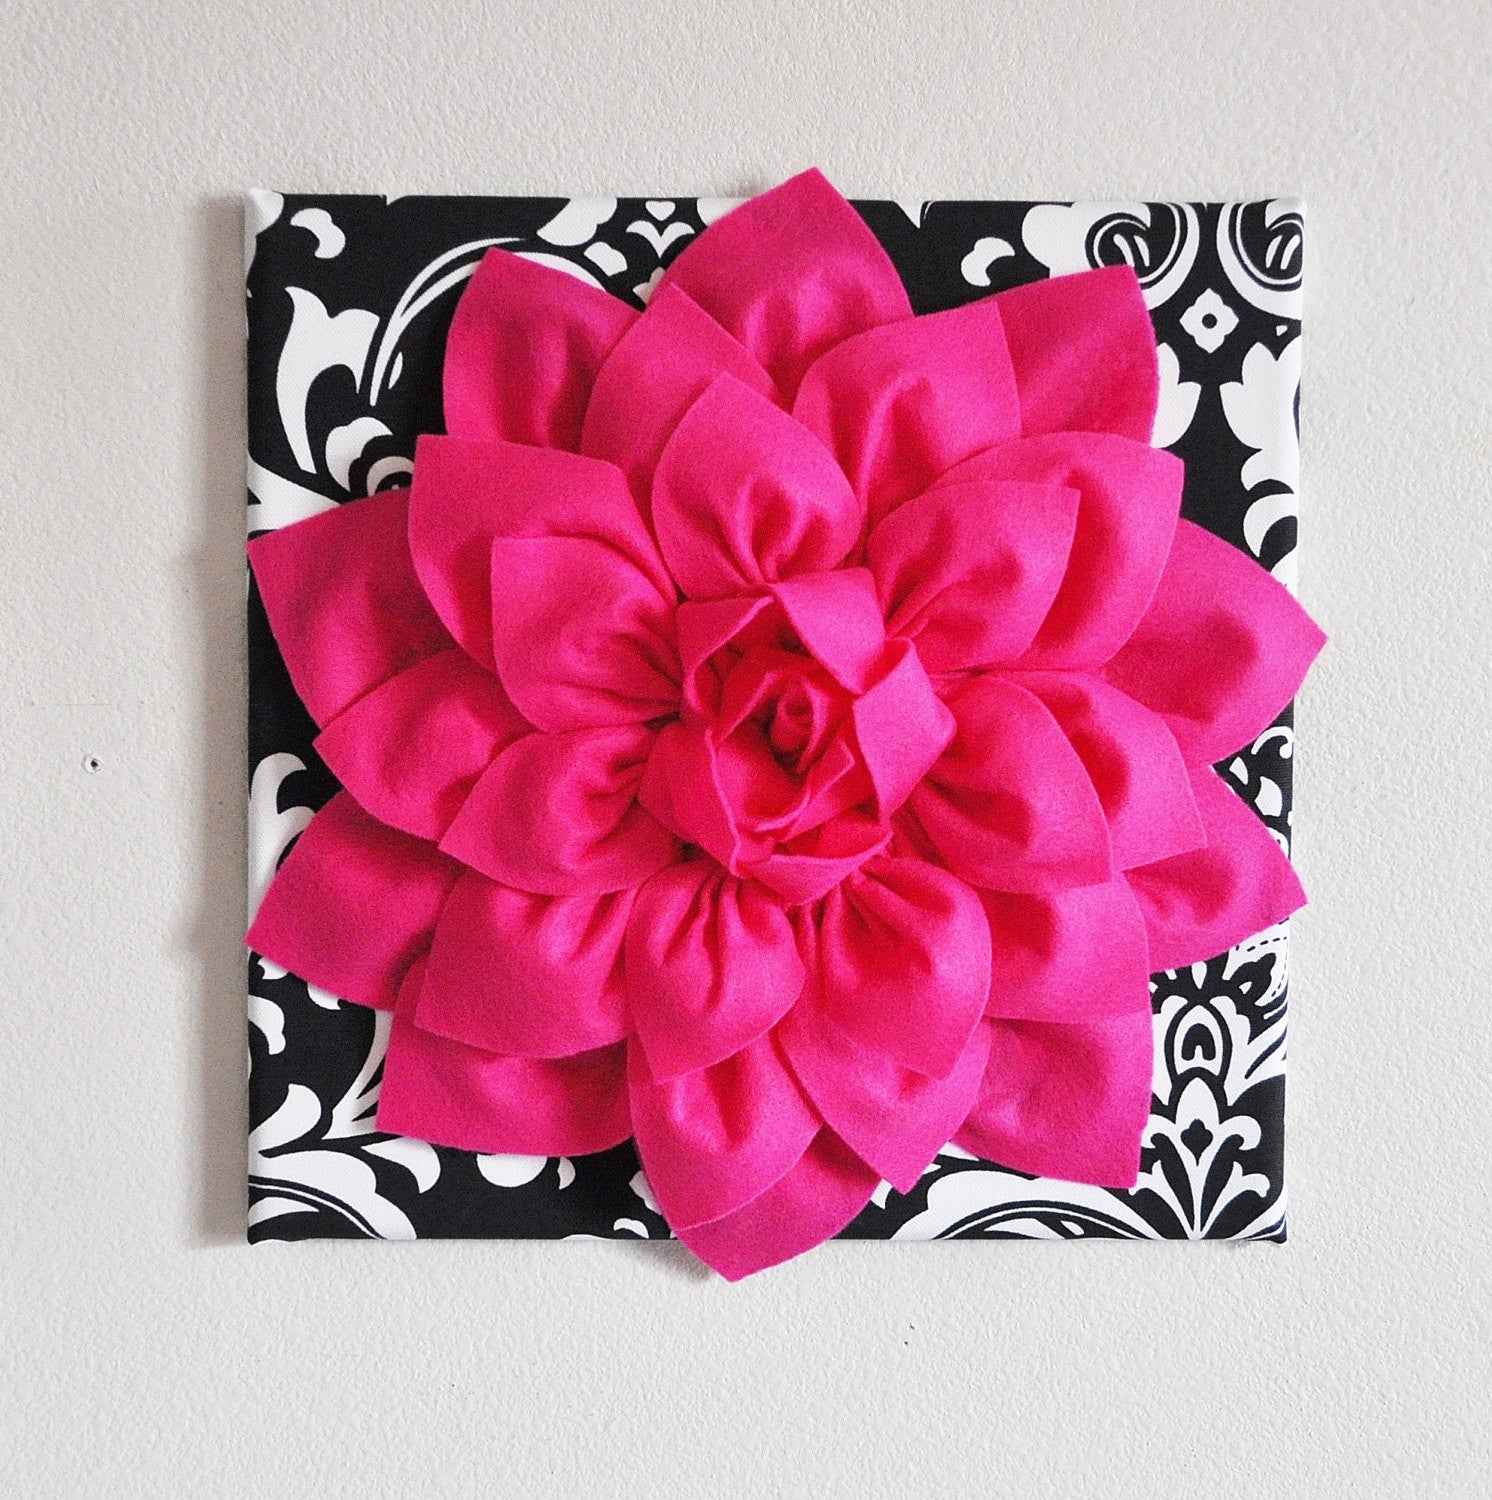 Hot Pink Wall Hanging Hot Pink Dahlia On Black And White Damask Print Daisy Manor